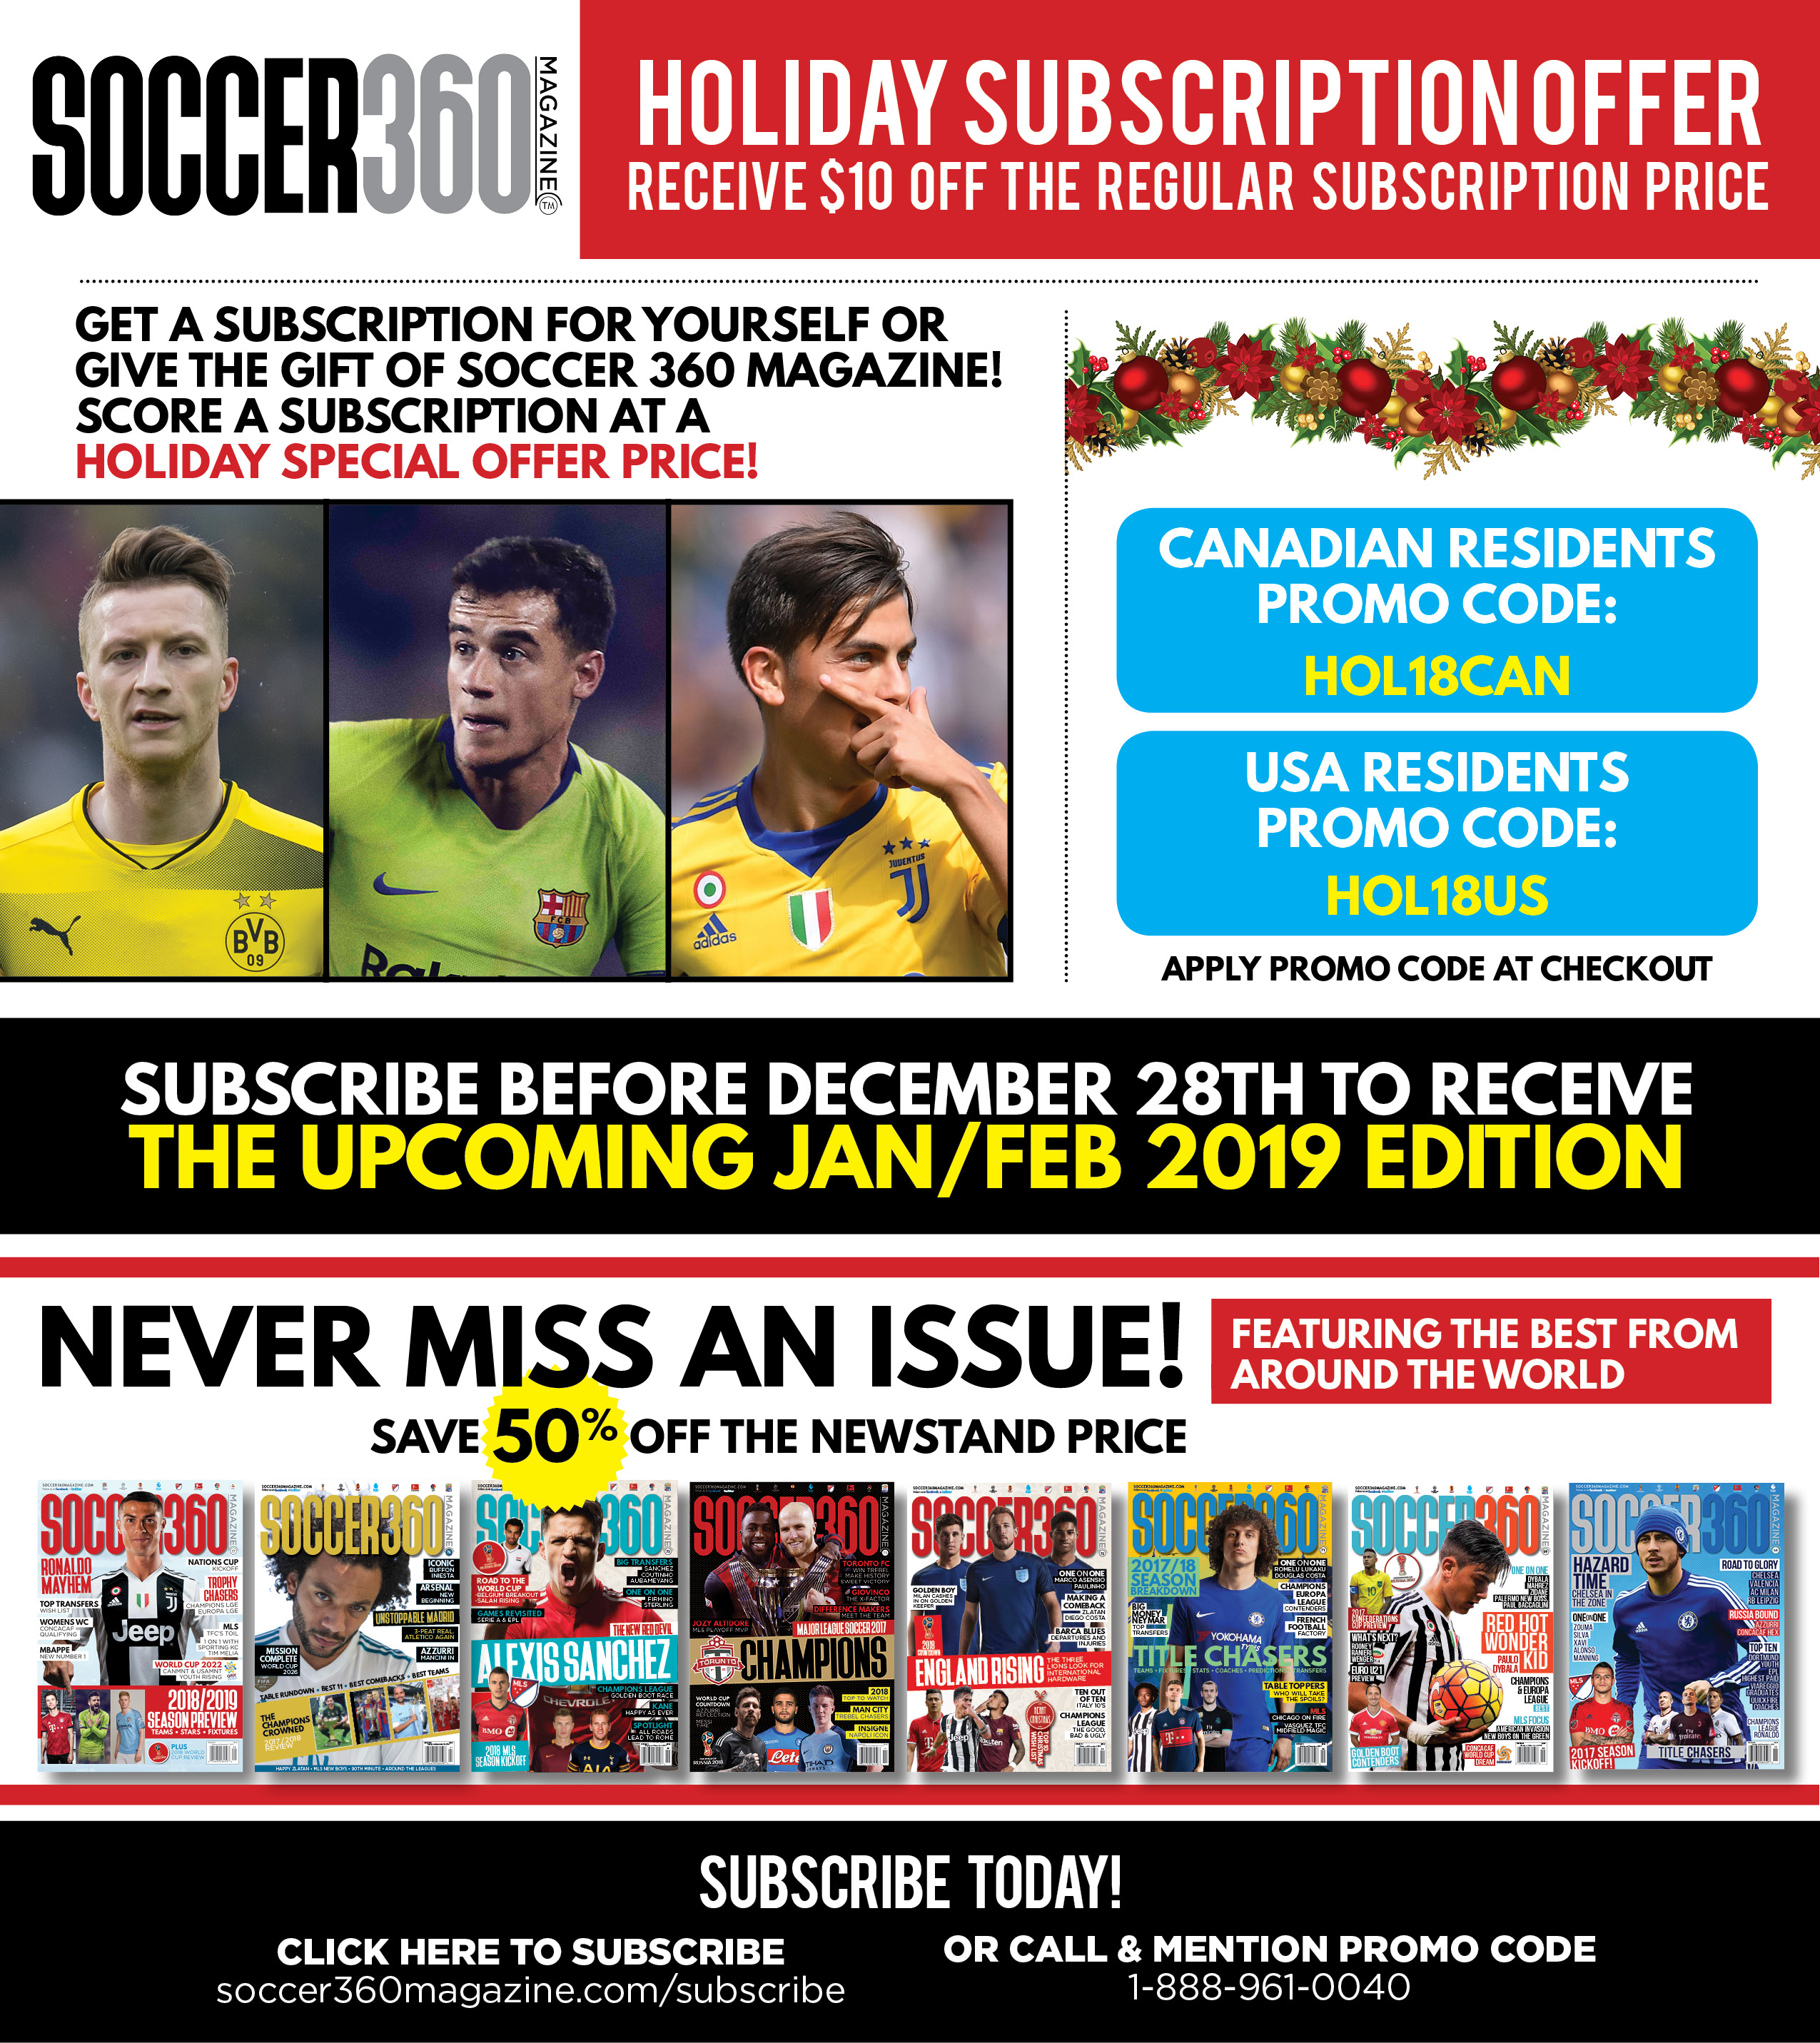 NEW OCTOBER Soccer360 holiday page offer.jpg